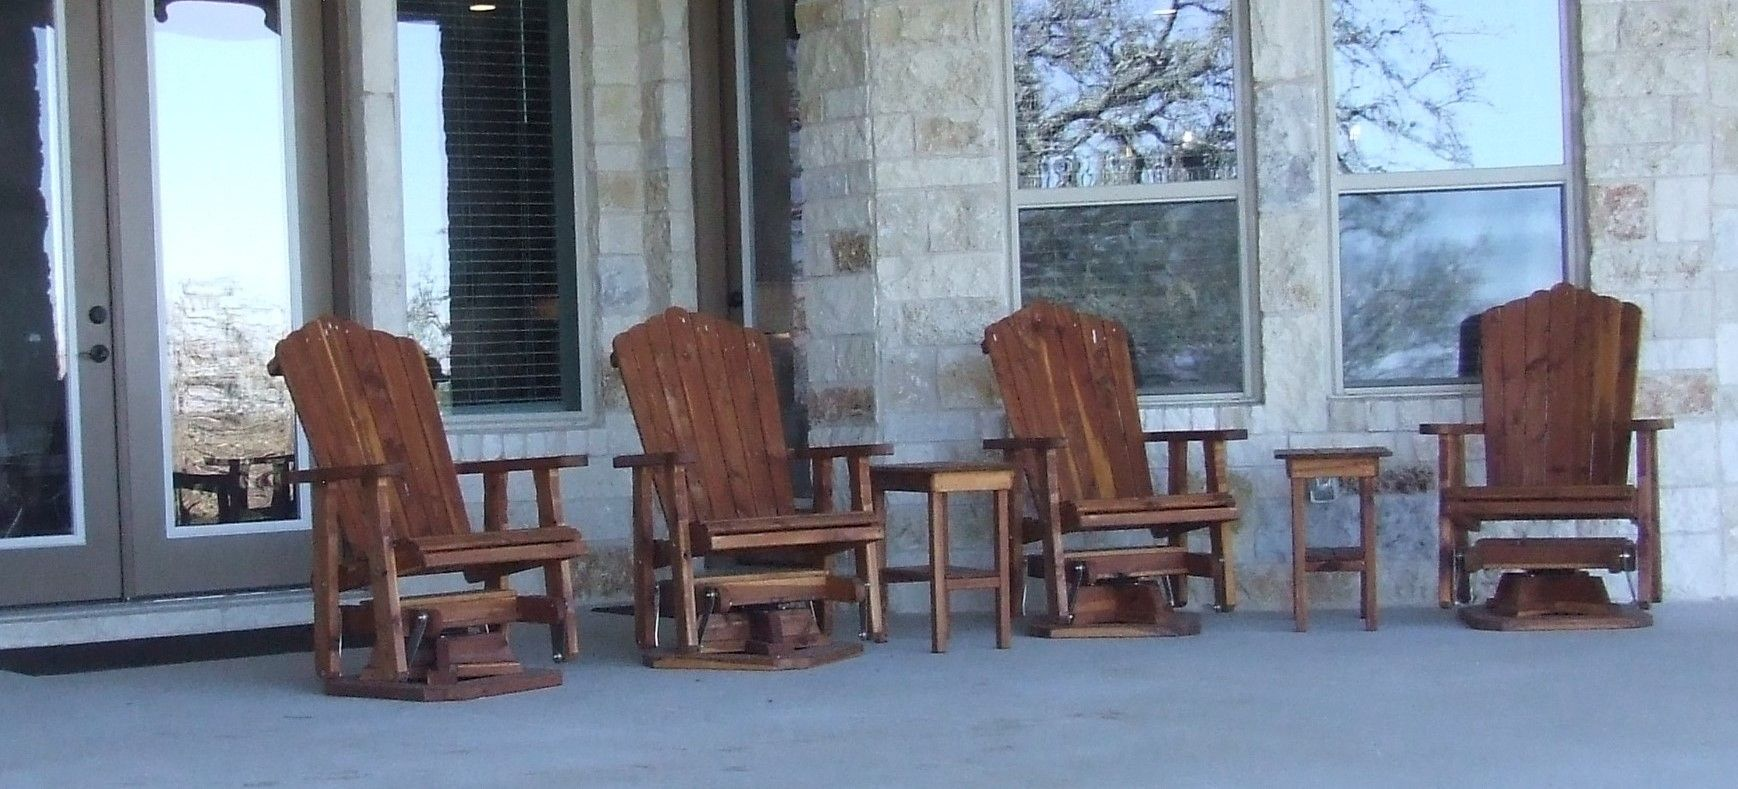 Patio chairs2.jpg